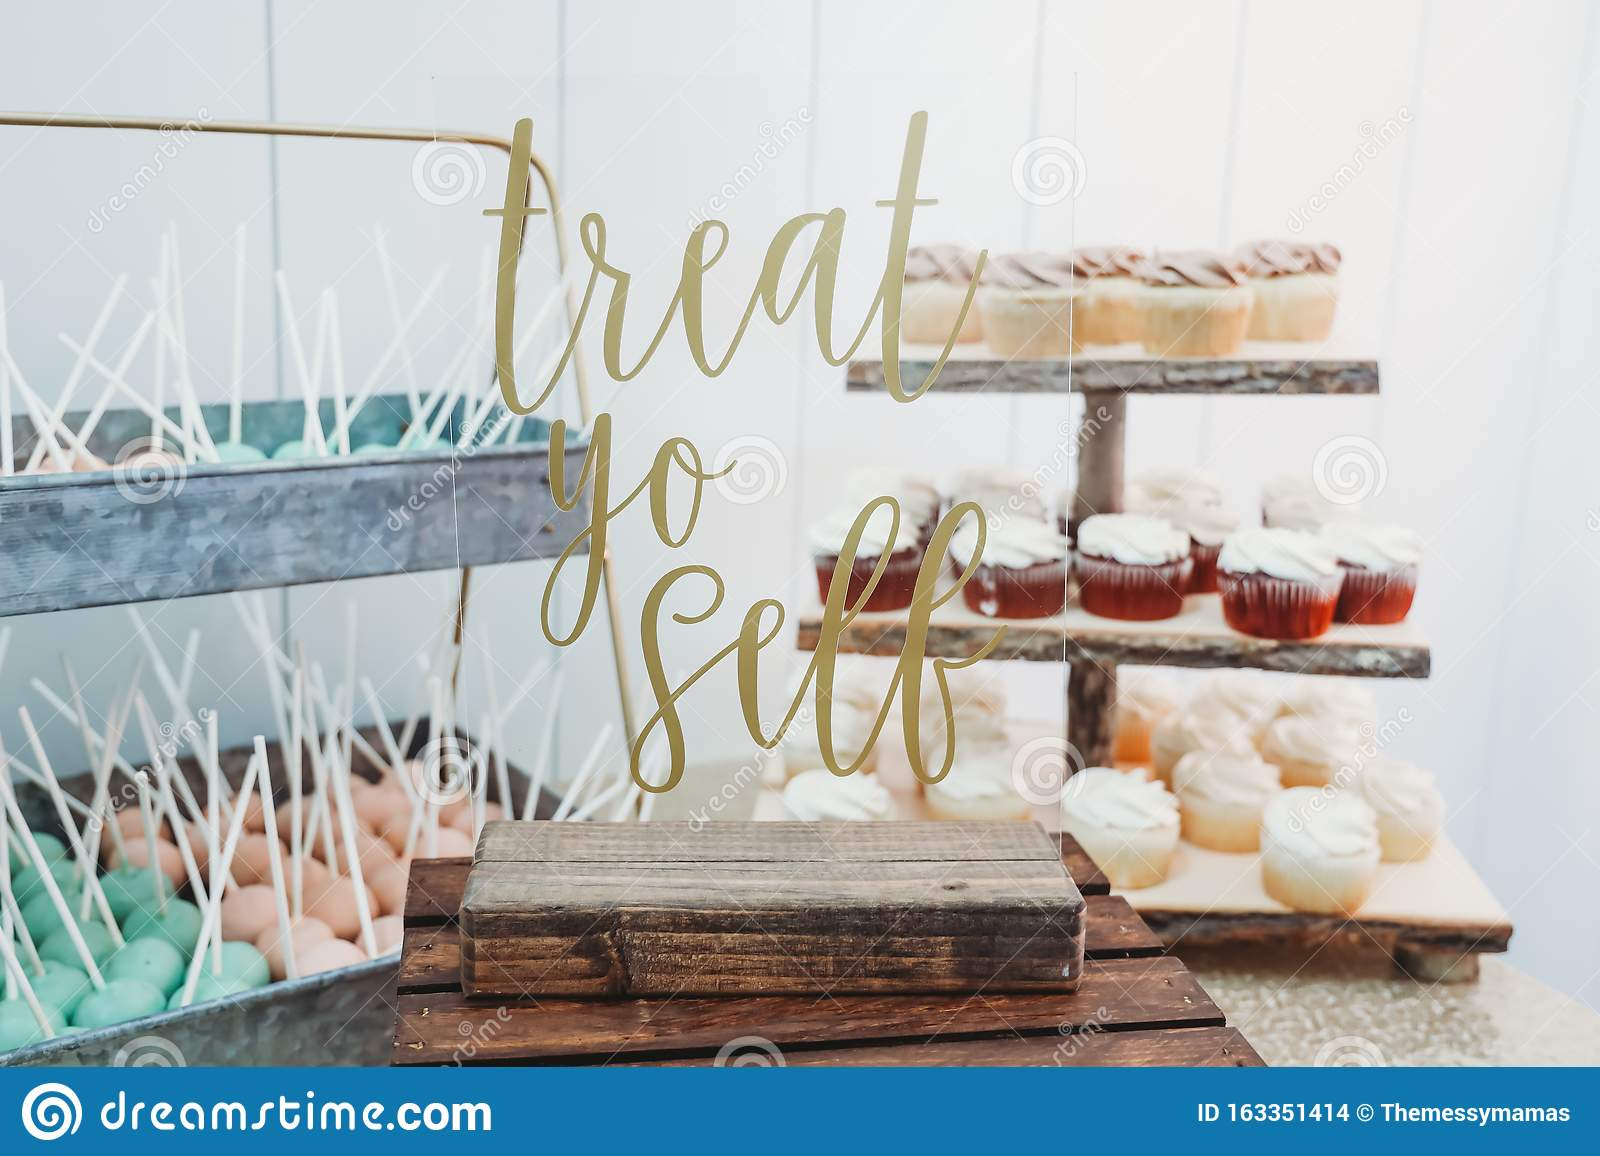 Wedding Dessert Table With Unique Sign Stock Photo Image Of Bright Dessert 163351414